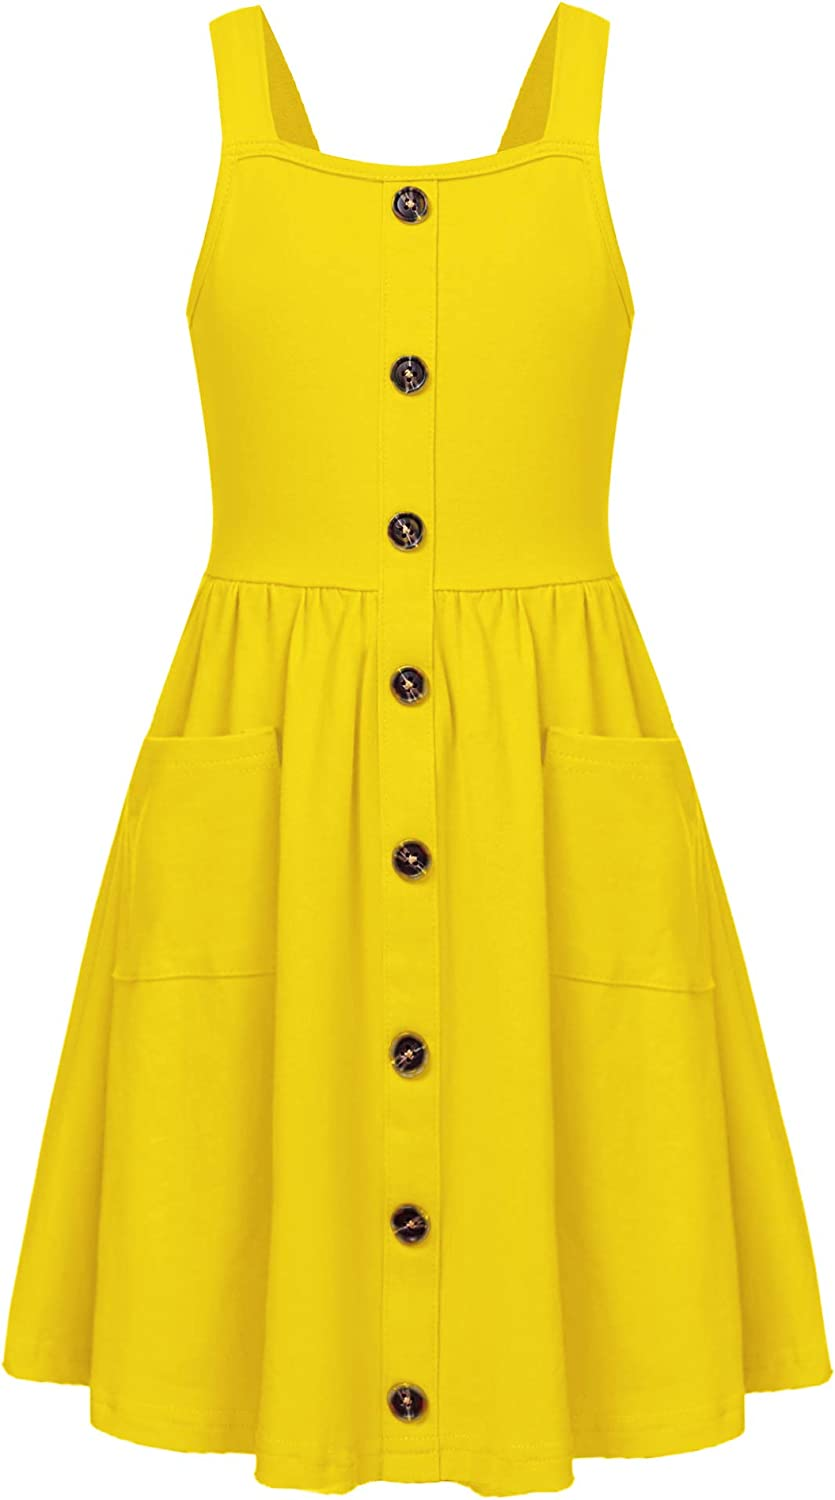 Arshiner Girl's Summer Sundress Spaghetti Strap Button Down Midi Dress with Pockets: Clothing